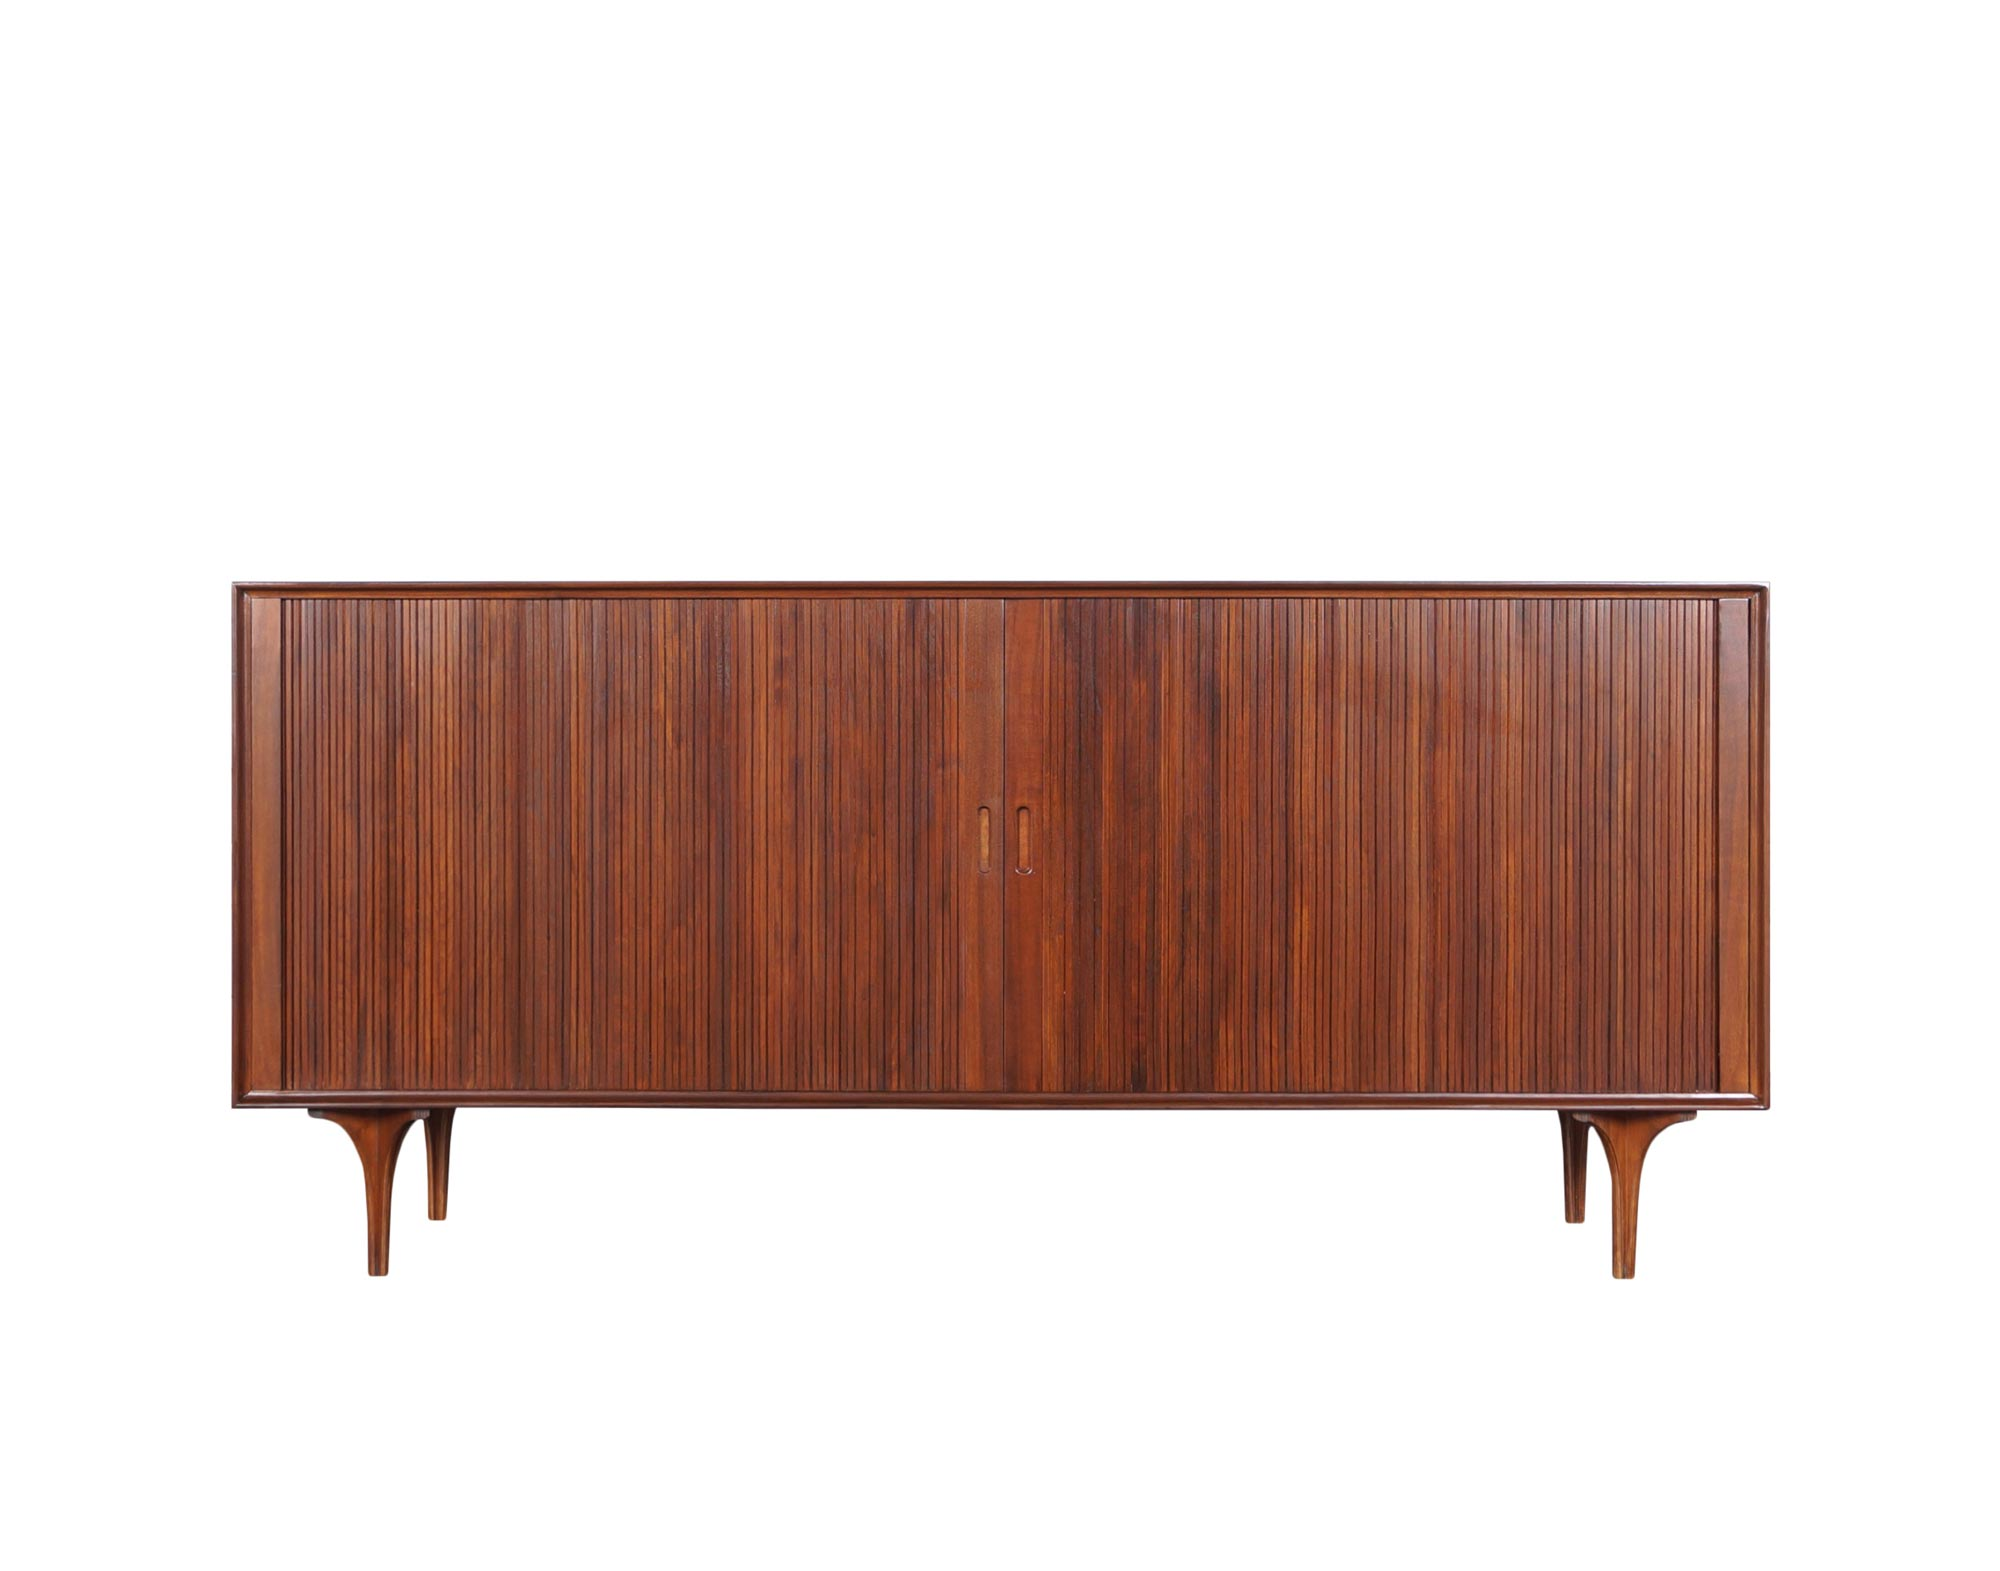 Vintage Tambour Doors Credenza by Robert Baron for Glenn of California